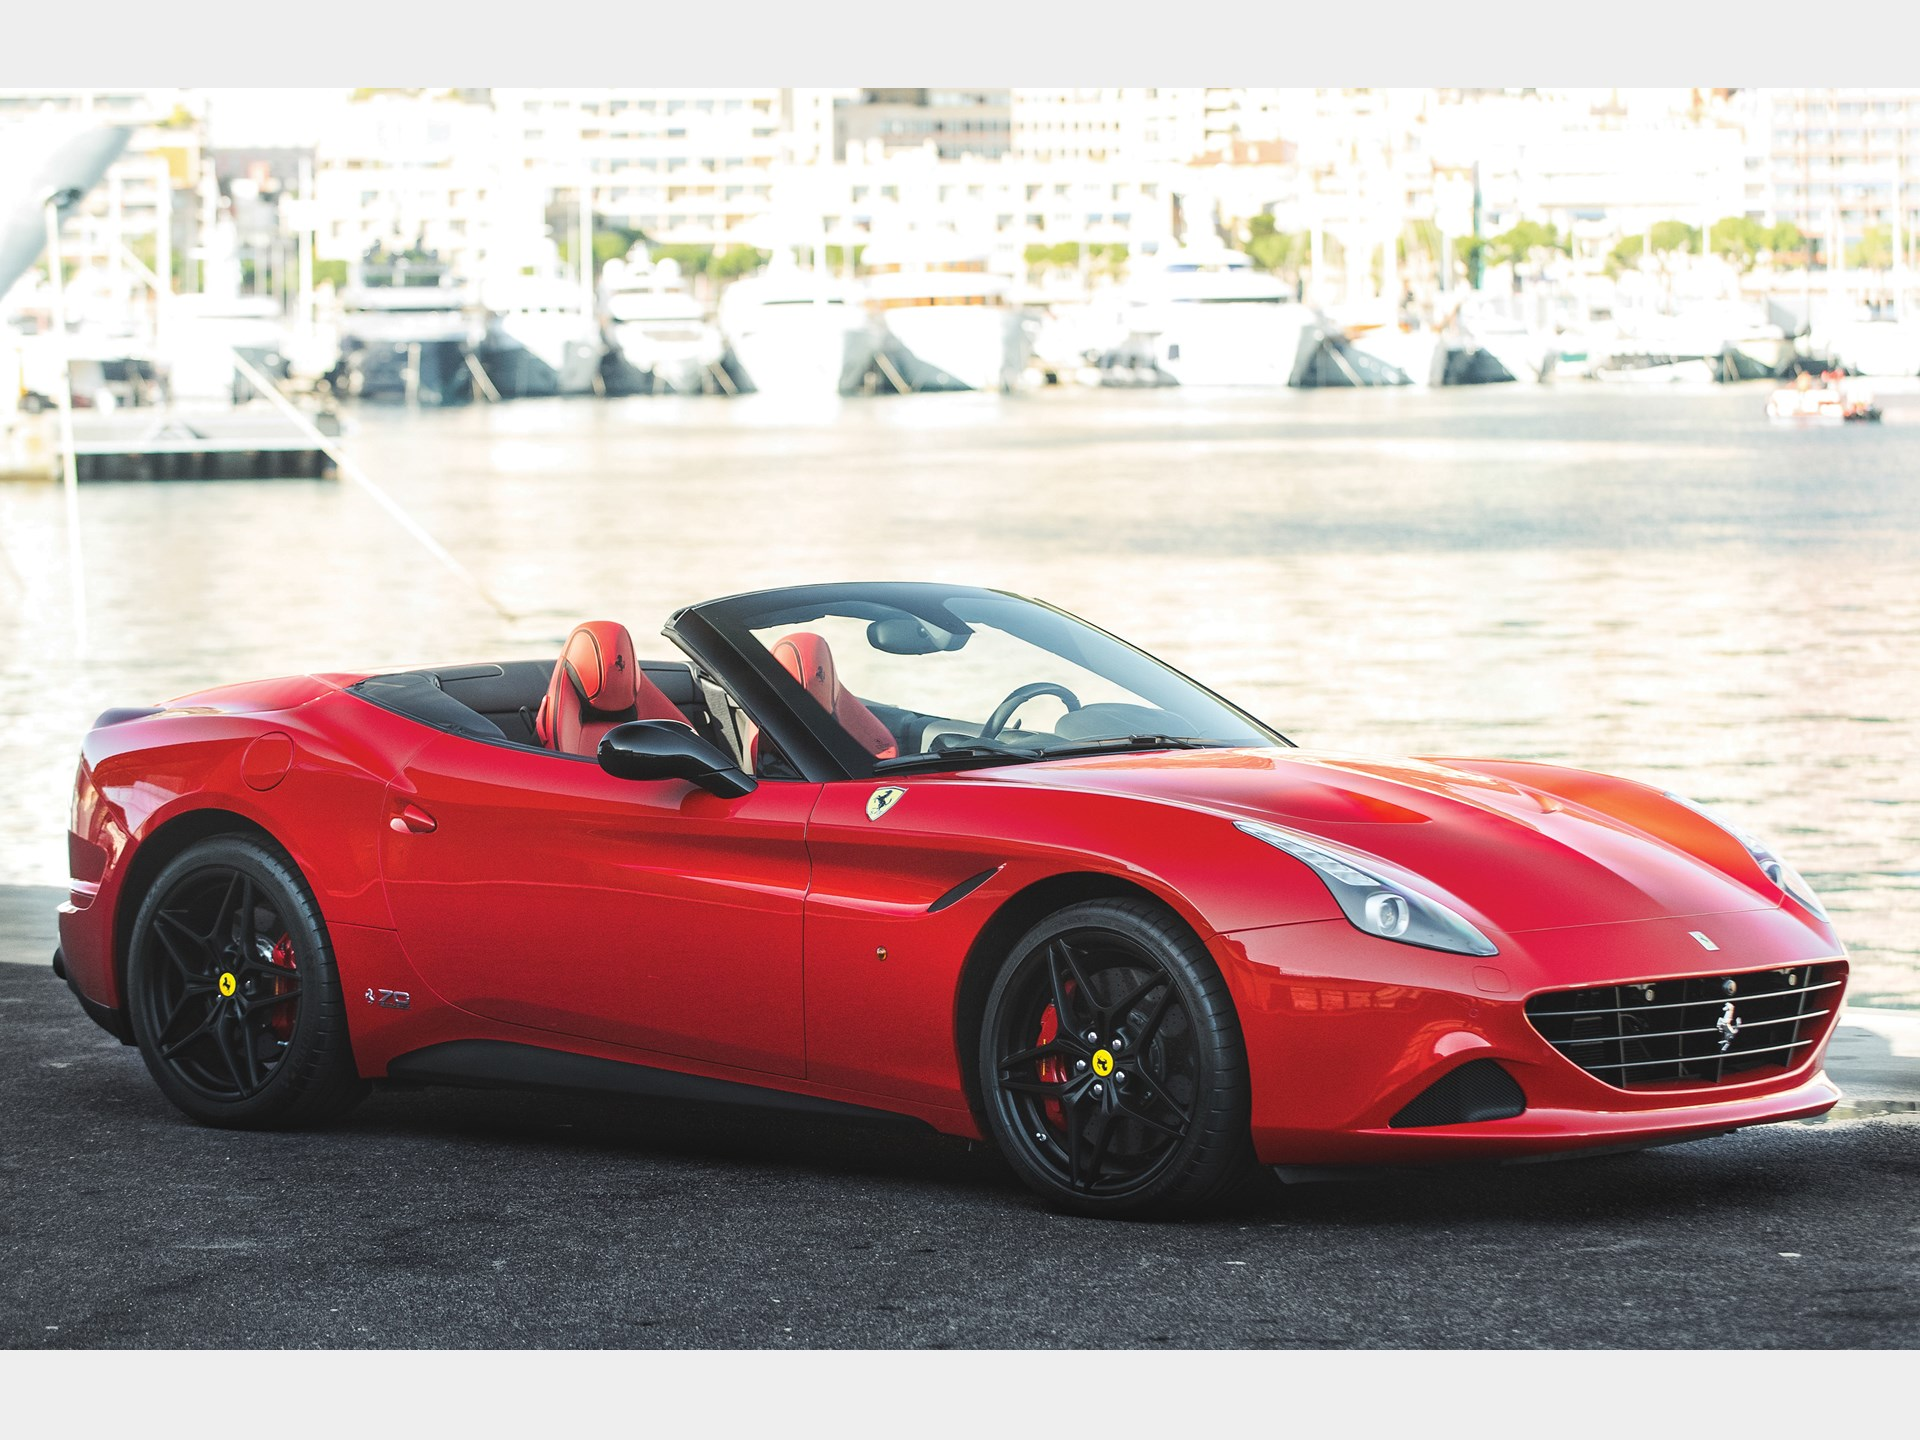 Ferrari California T >> Rm Sotheby S 2017 Ferrari California T 70th Anniversary Essen 2019